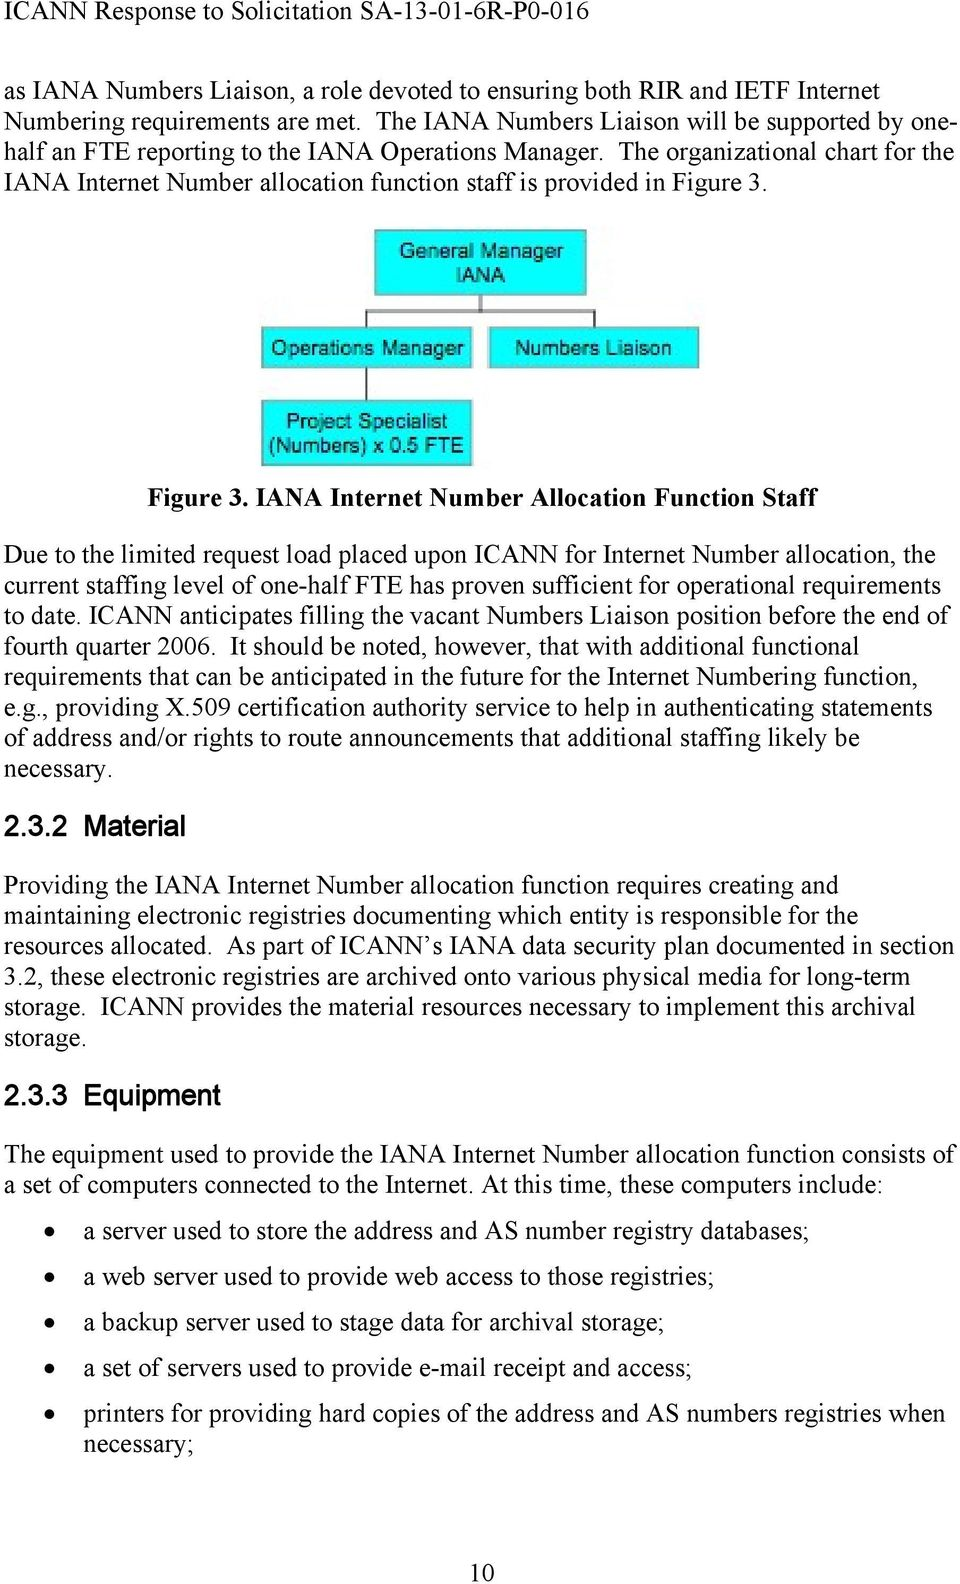 The organizational chart for the IANA Internet Number allocation function staff is provided in Figure 3.